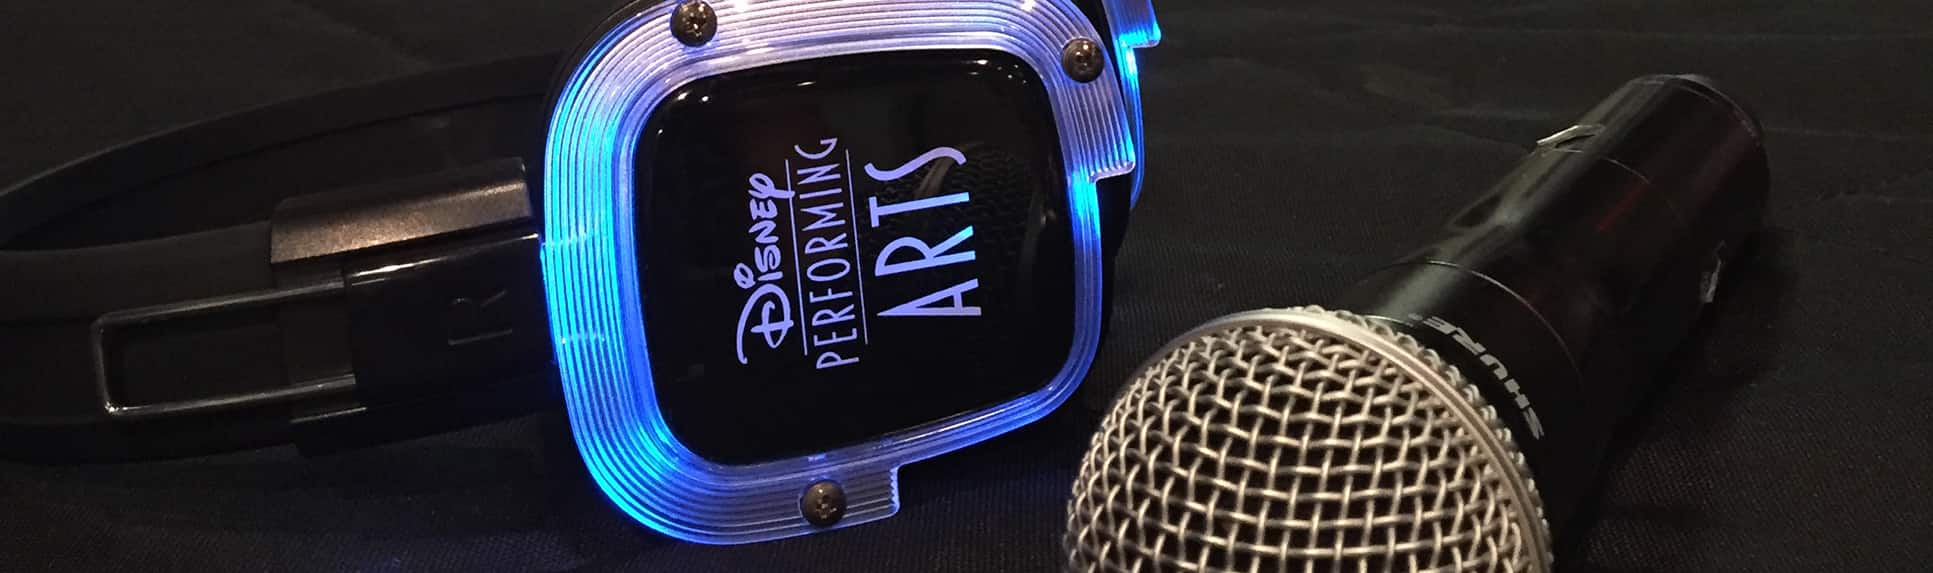 A microphone next to headphones that say Disney Performing Arts